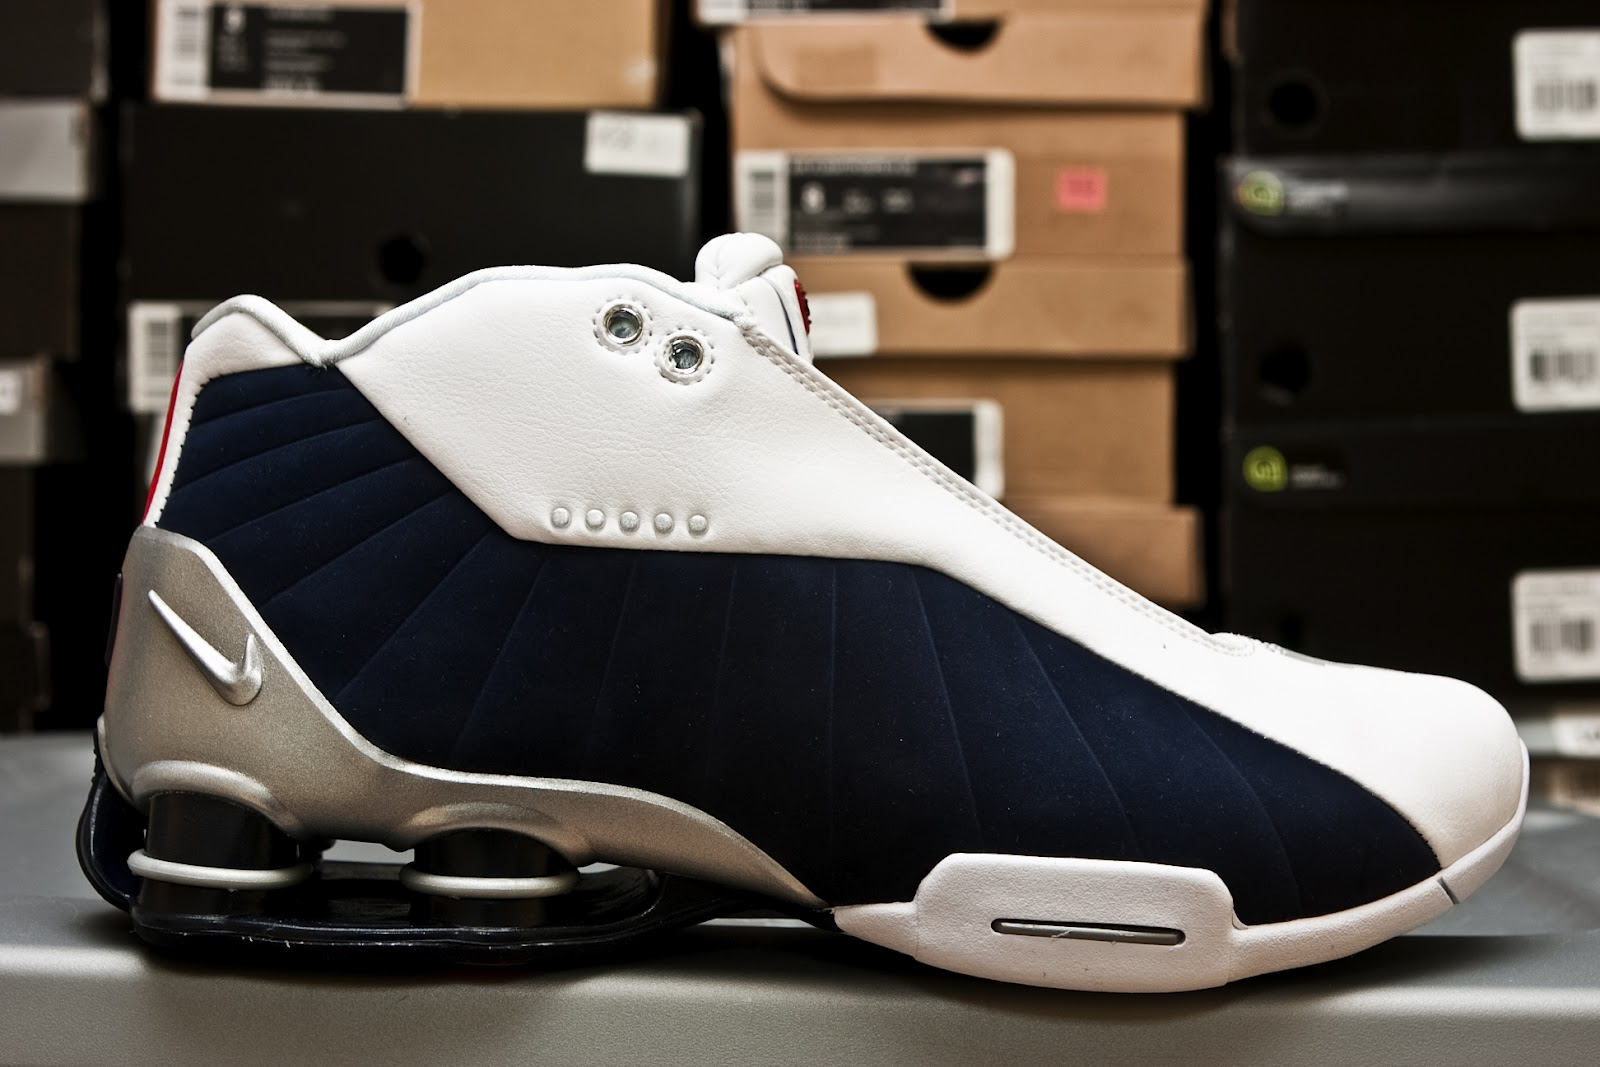 276038d5141483 ... nike shox bb4 vince carter olympic 2ef2a 57e34  czech year 2000 mens  olympic basketball teams gold medal run with a limited release of this